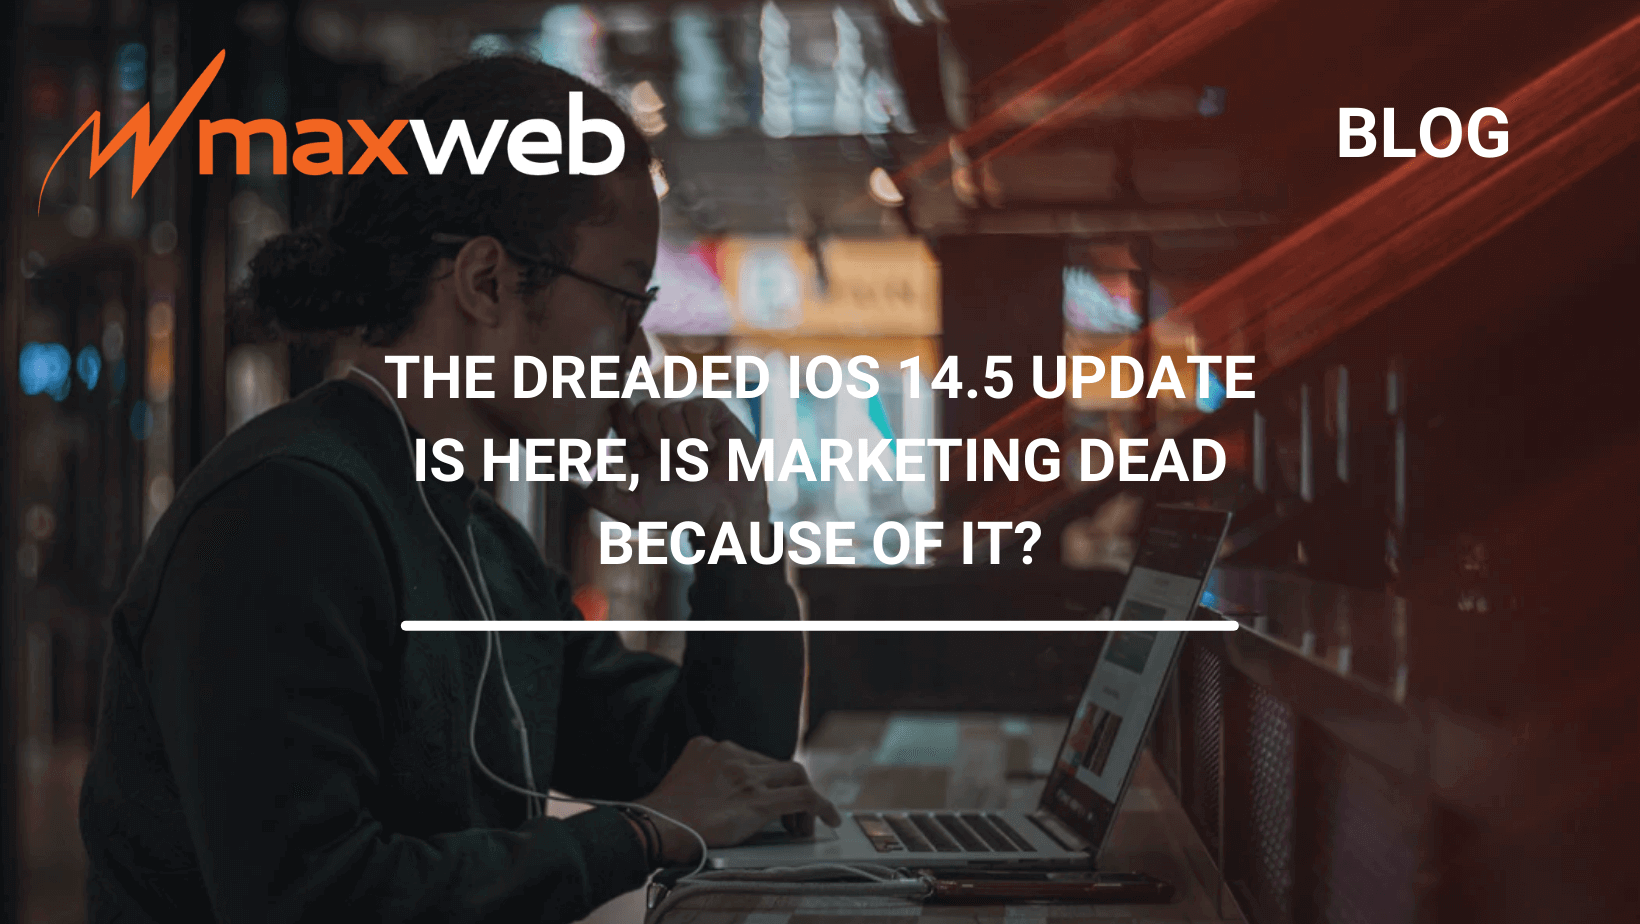 The Dreaded iOS 14.5 Update Is Here, Is Marketing Dead Because of It?